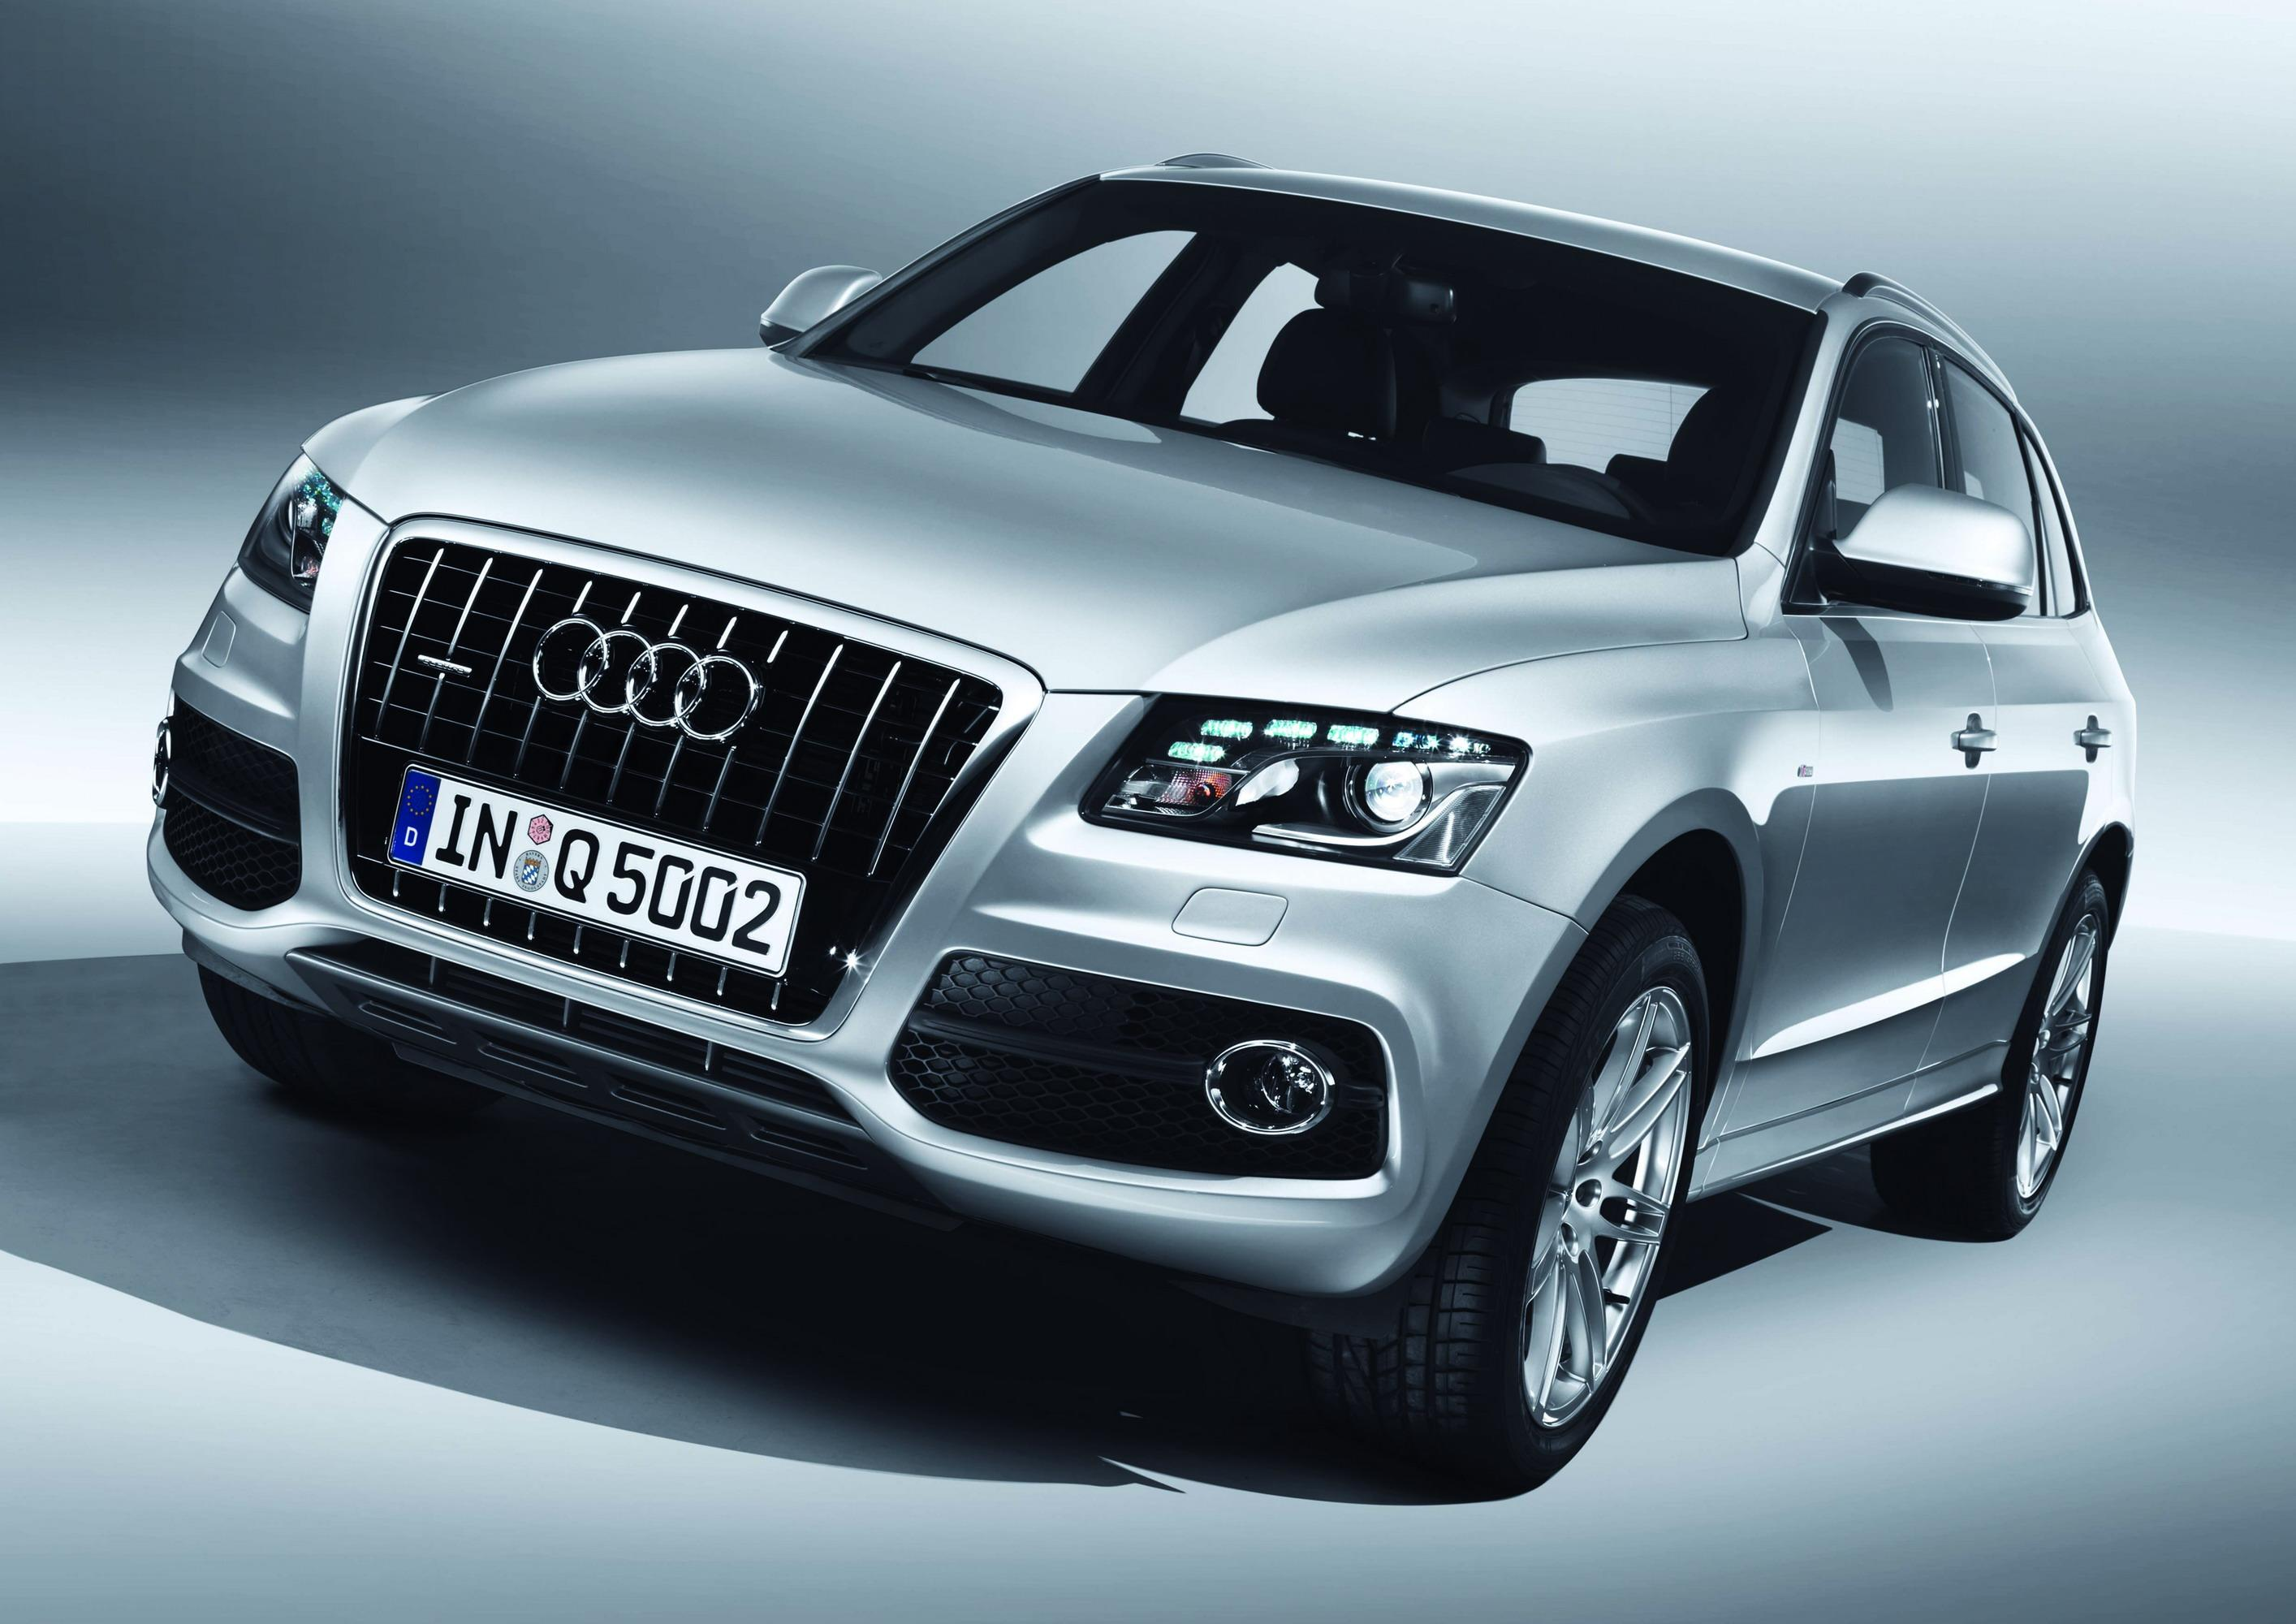 audi q5 s line first official images pictures photos wallpapers top speed. Black Bedroom Furniture Sets. Home Design Ideas